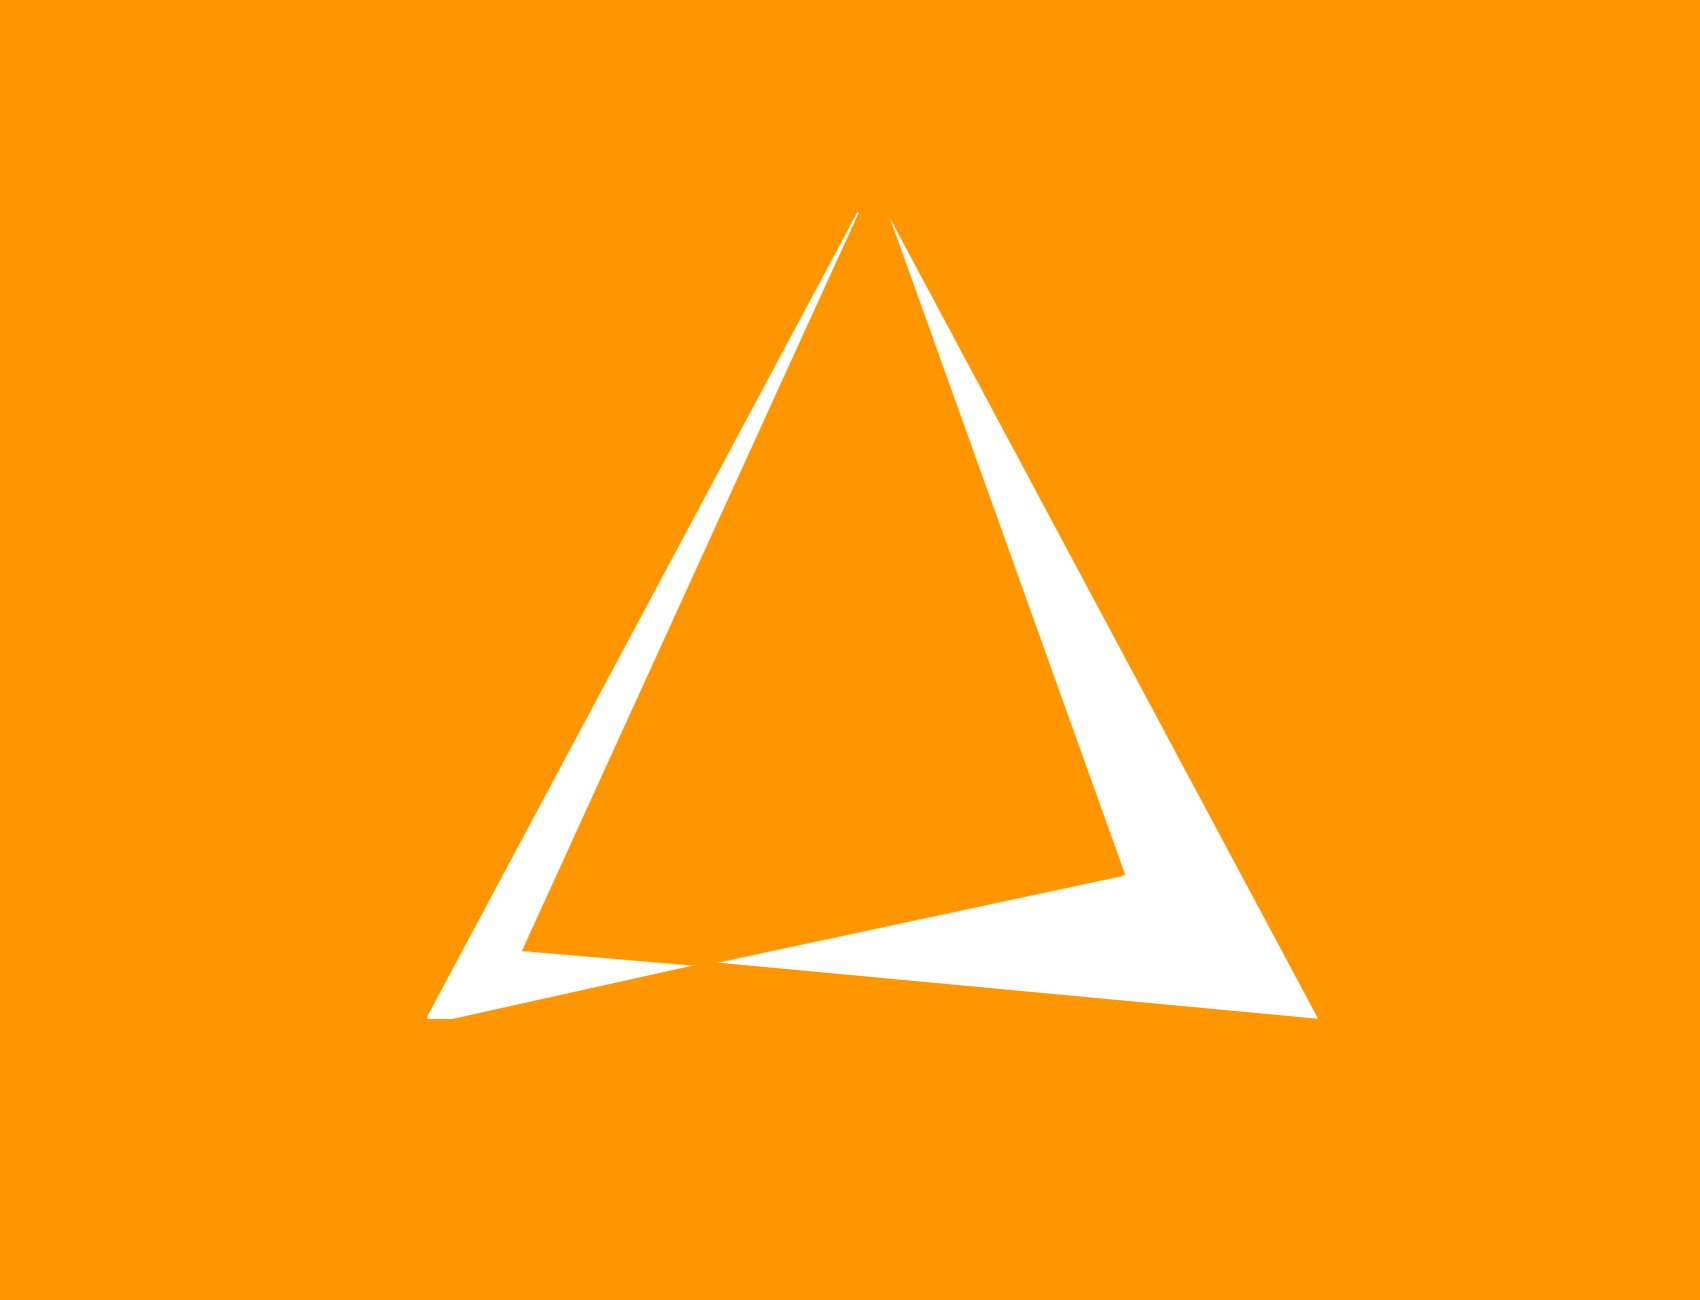 Triangle Consulting Engineers Welcome